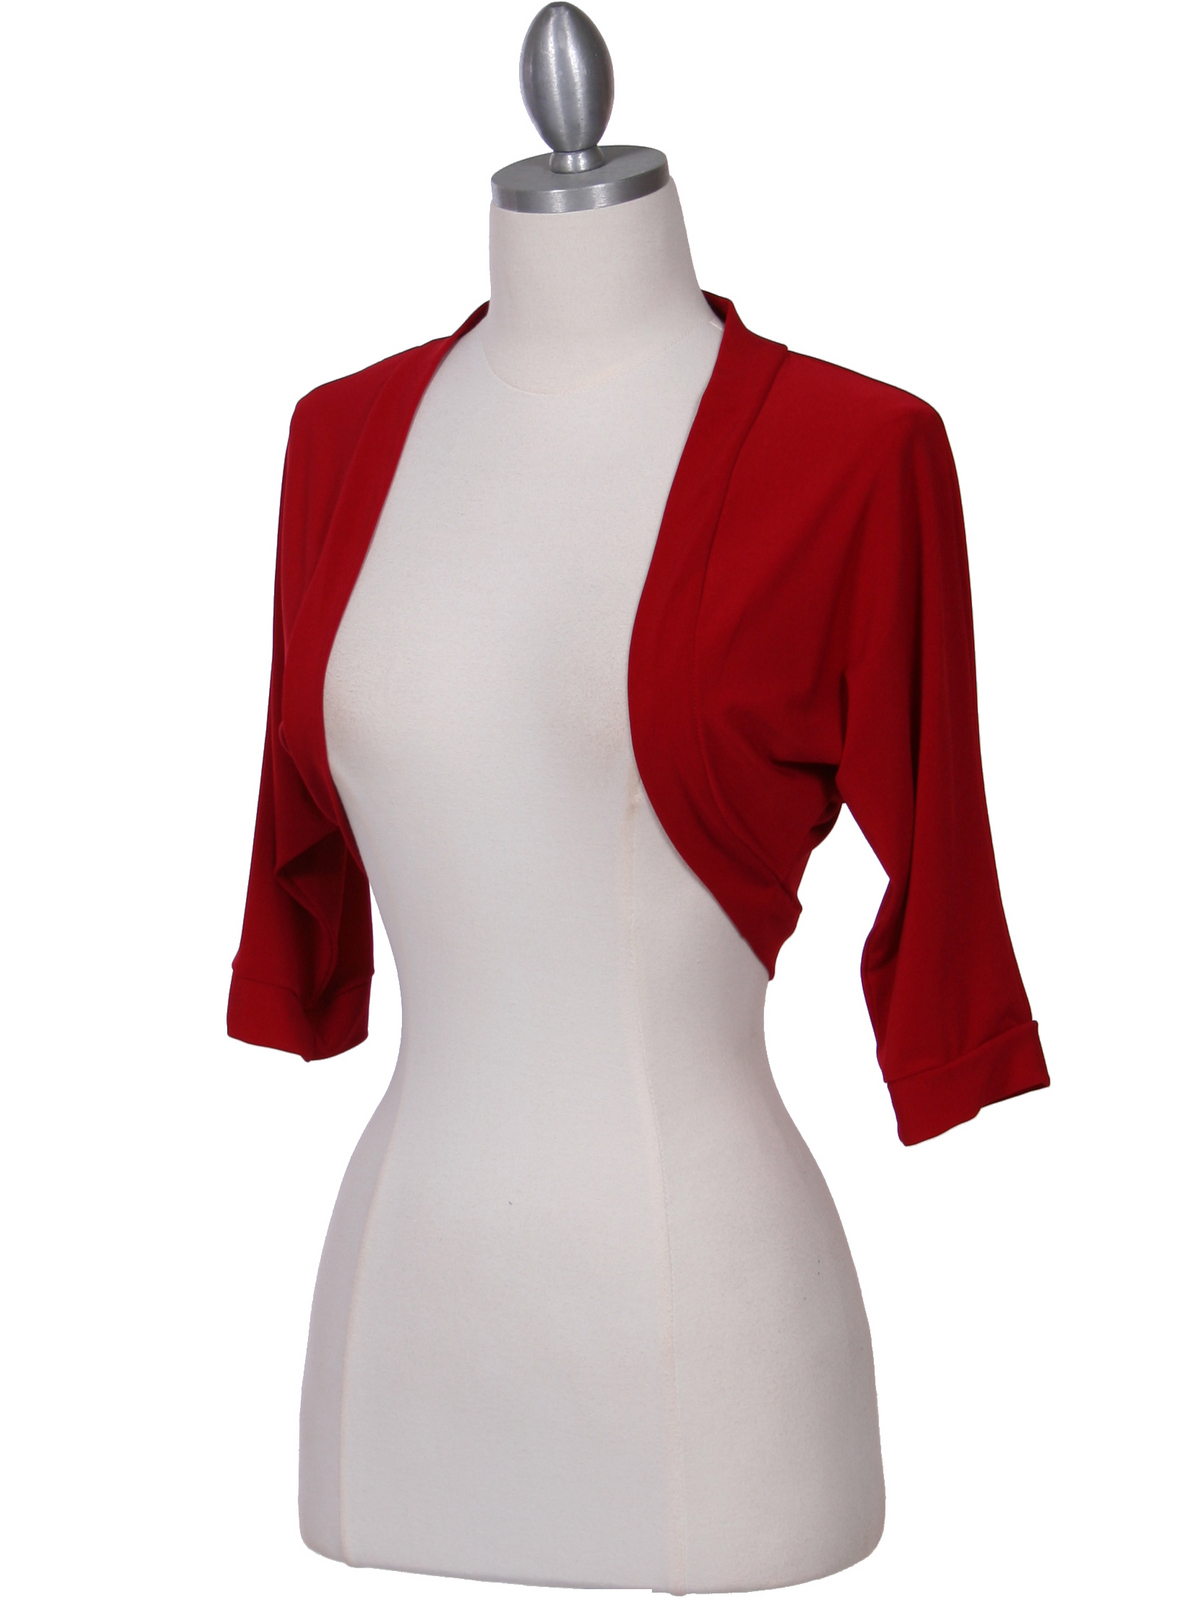 Bolero Jacket For Evening Dress